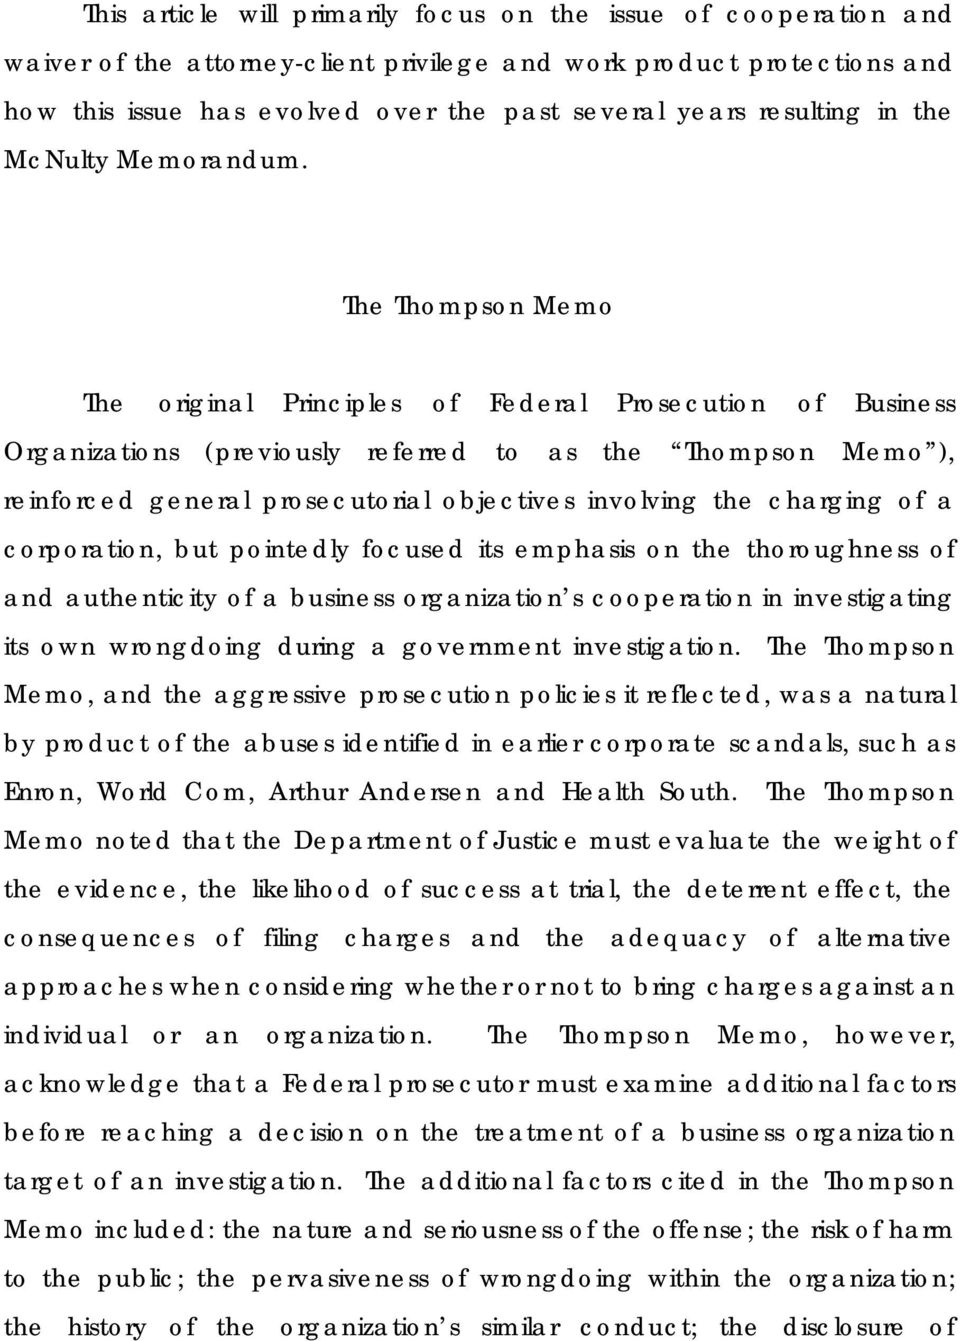 The Thompson Memo The original Principles of Federal Prosecution of Business Organizations (previously referred to as the Thompson Memo ), reinforced general prosecutorial objectives involving the